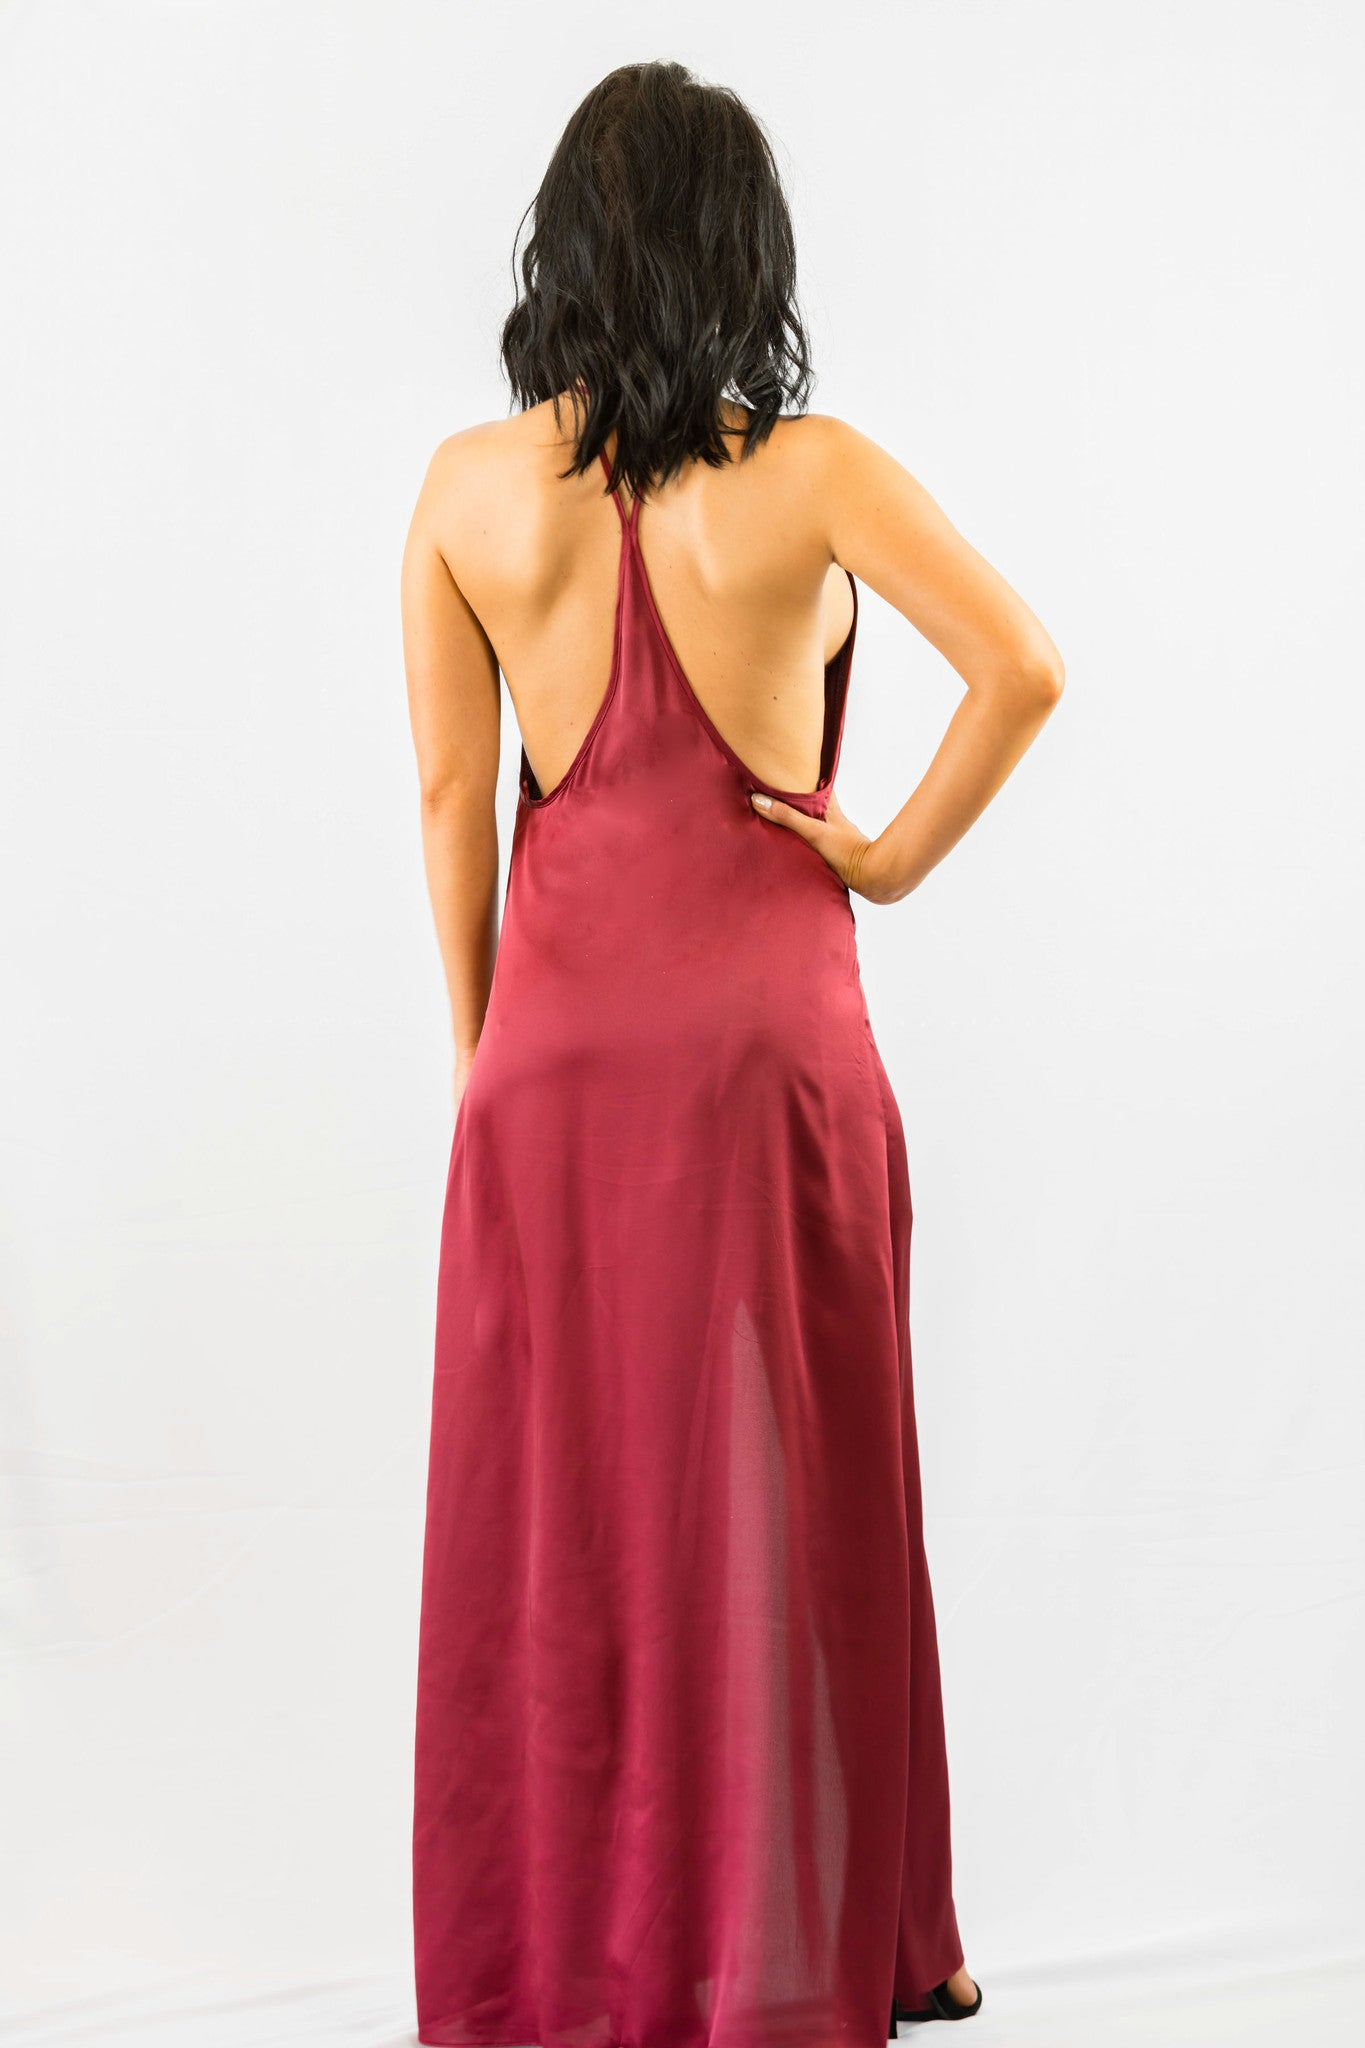 WYLDR Elegance Maxi Dress - Wine - DRESSES - WYLDR - Free Vibrationz - 5